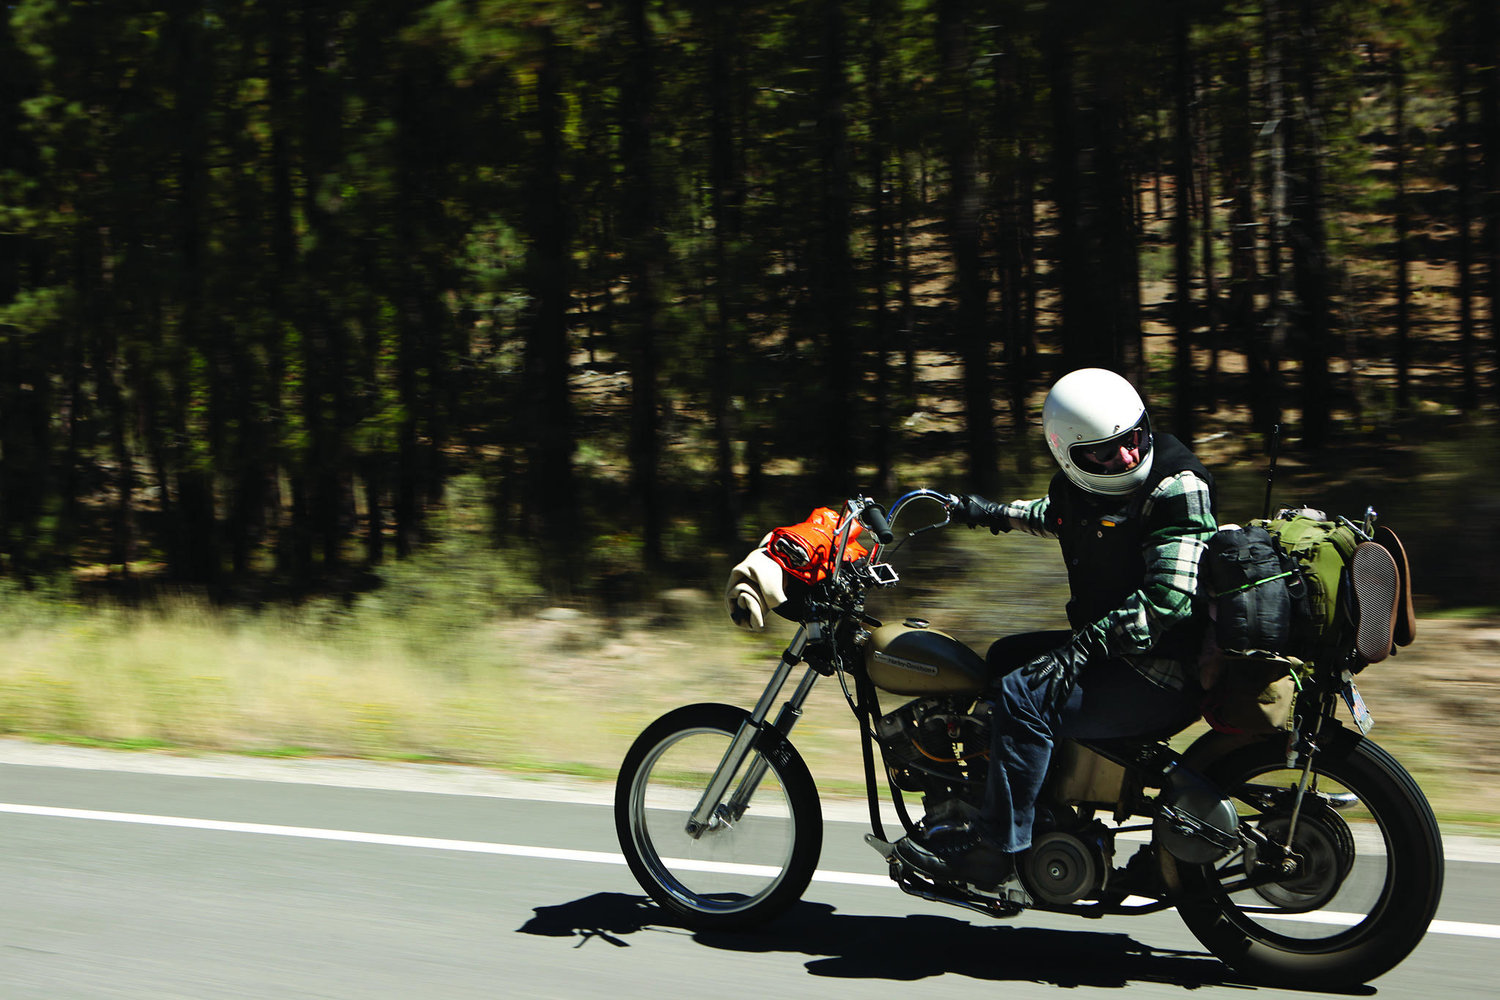 4ec5eef2684 How to (Safely) Pack for a Motorcycle Trip | Expert Advice from Bill Bryant  of Biltwell — Babes Ride Out